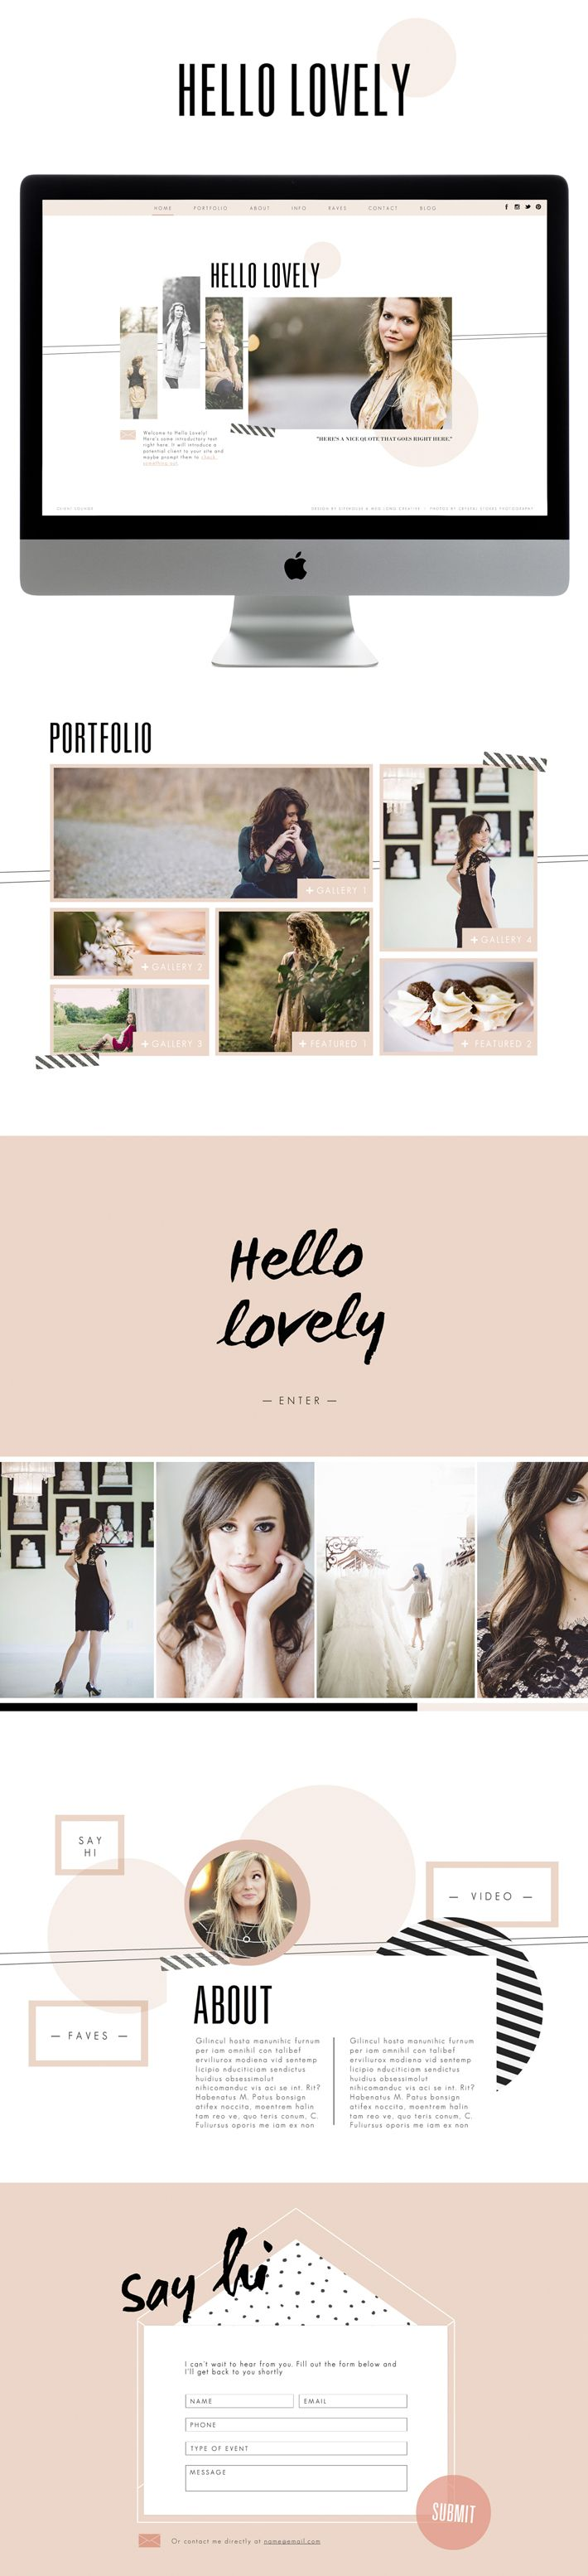 LOVE THE COMBO OF SIMPLE PATTERNS (stripes  solids) Hello Lovely - Designed by Meg Long for SiteHouse by Promise Tangeman